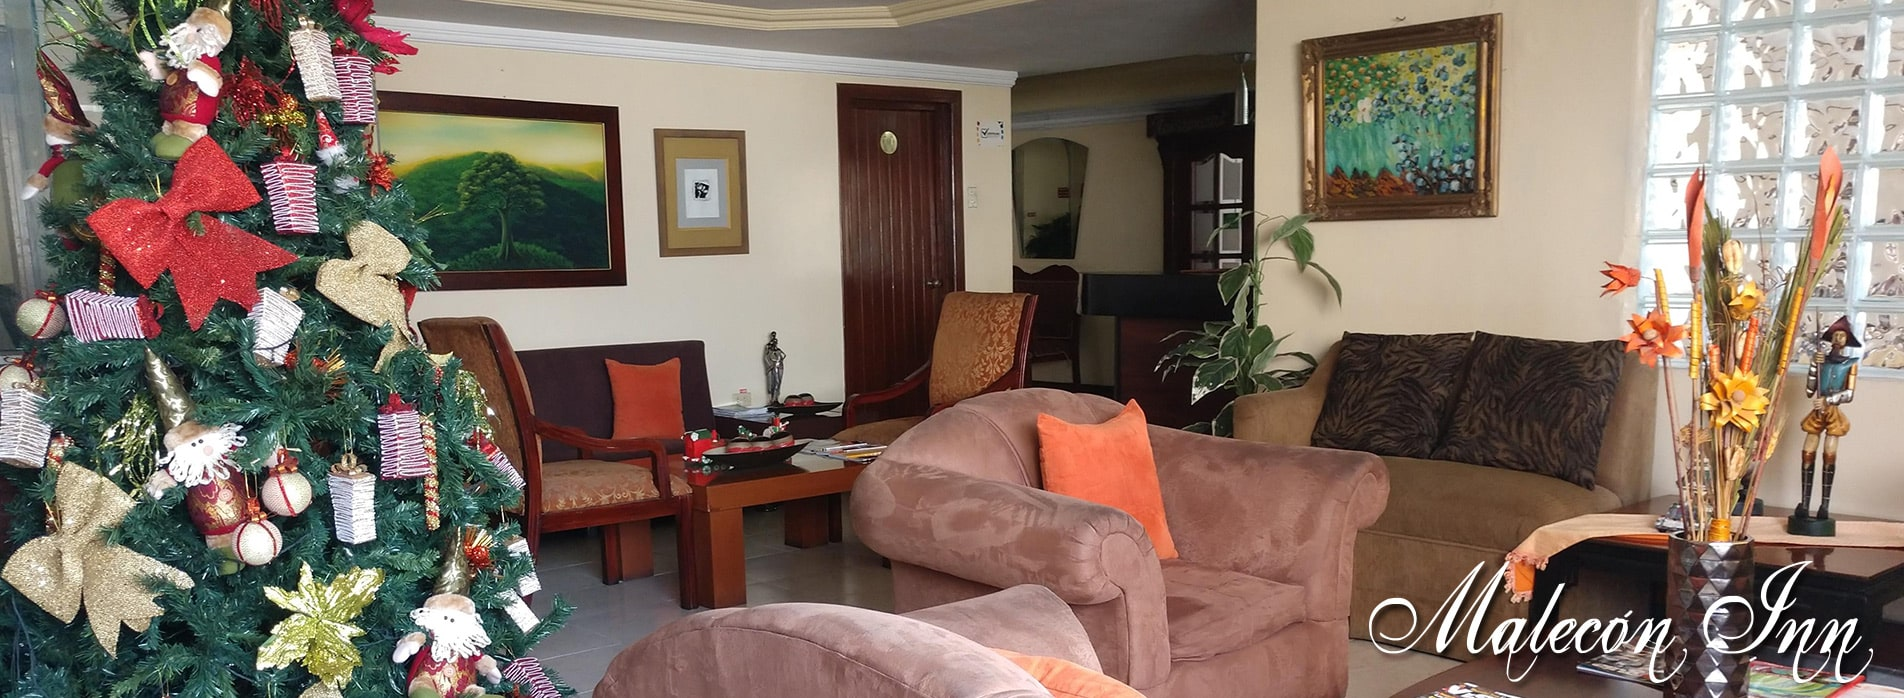 hotel in guayaquil 3 stars